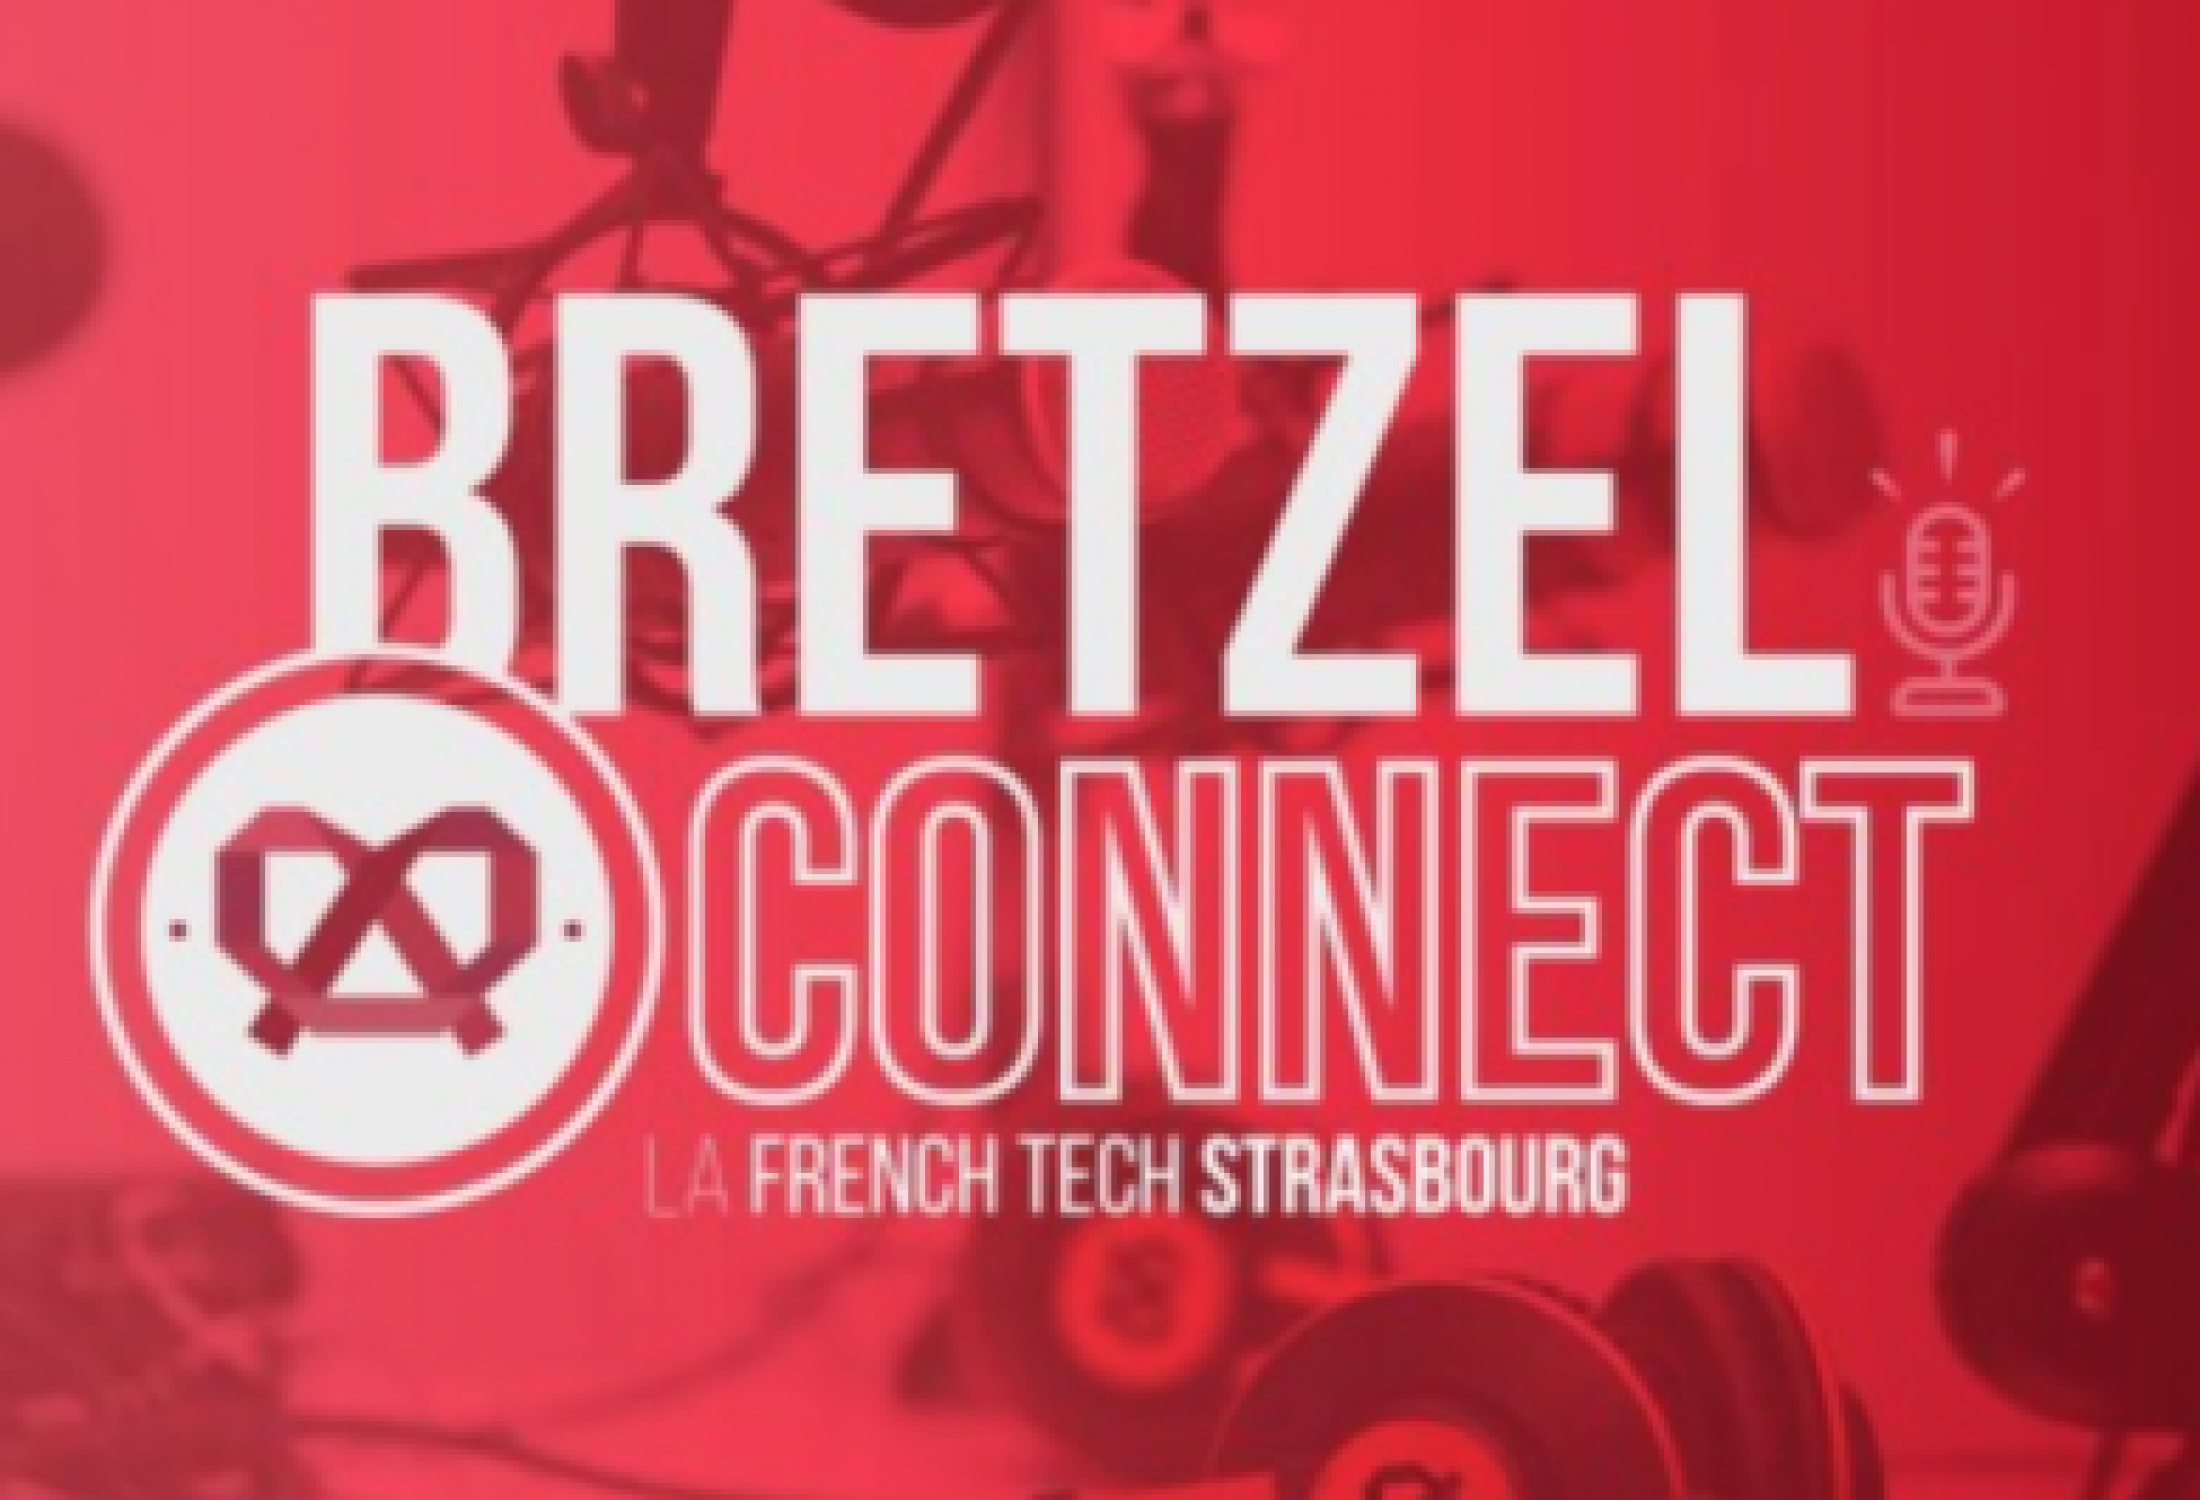 Bretzel Connect : L'émission 100% French Tech Strasbourg